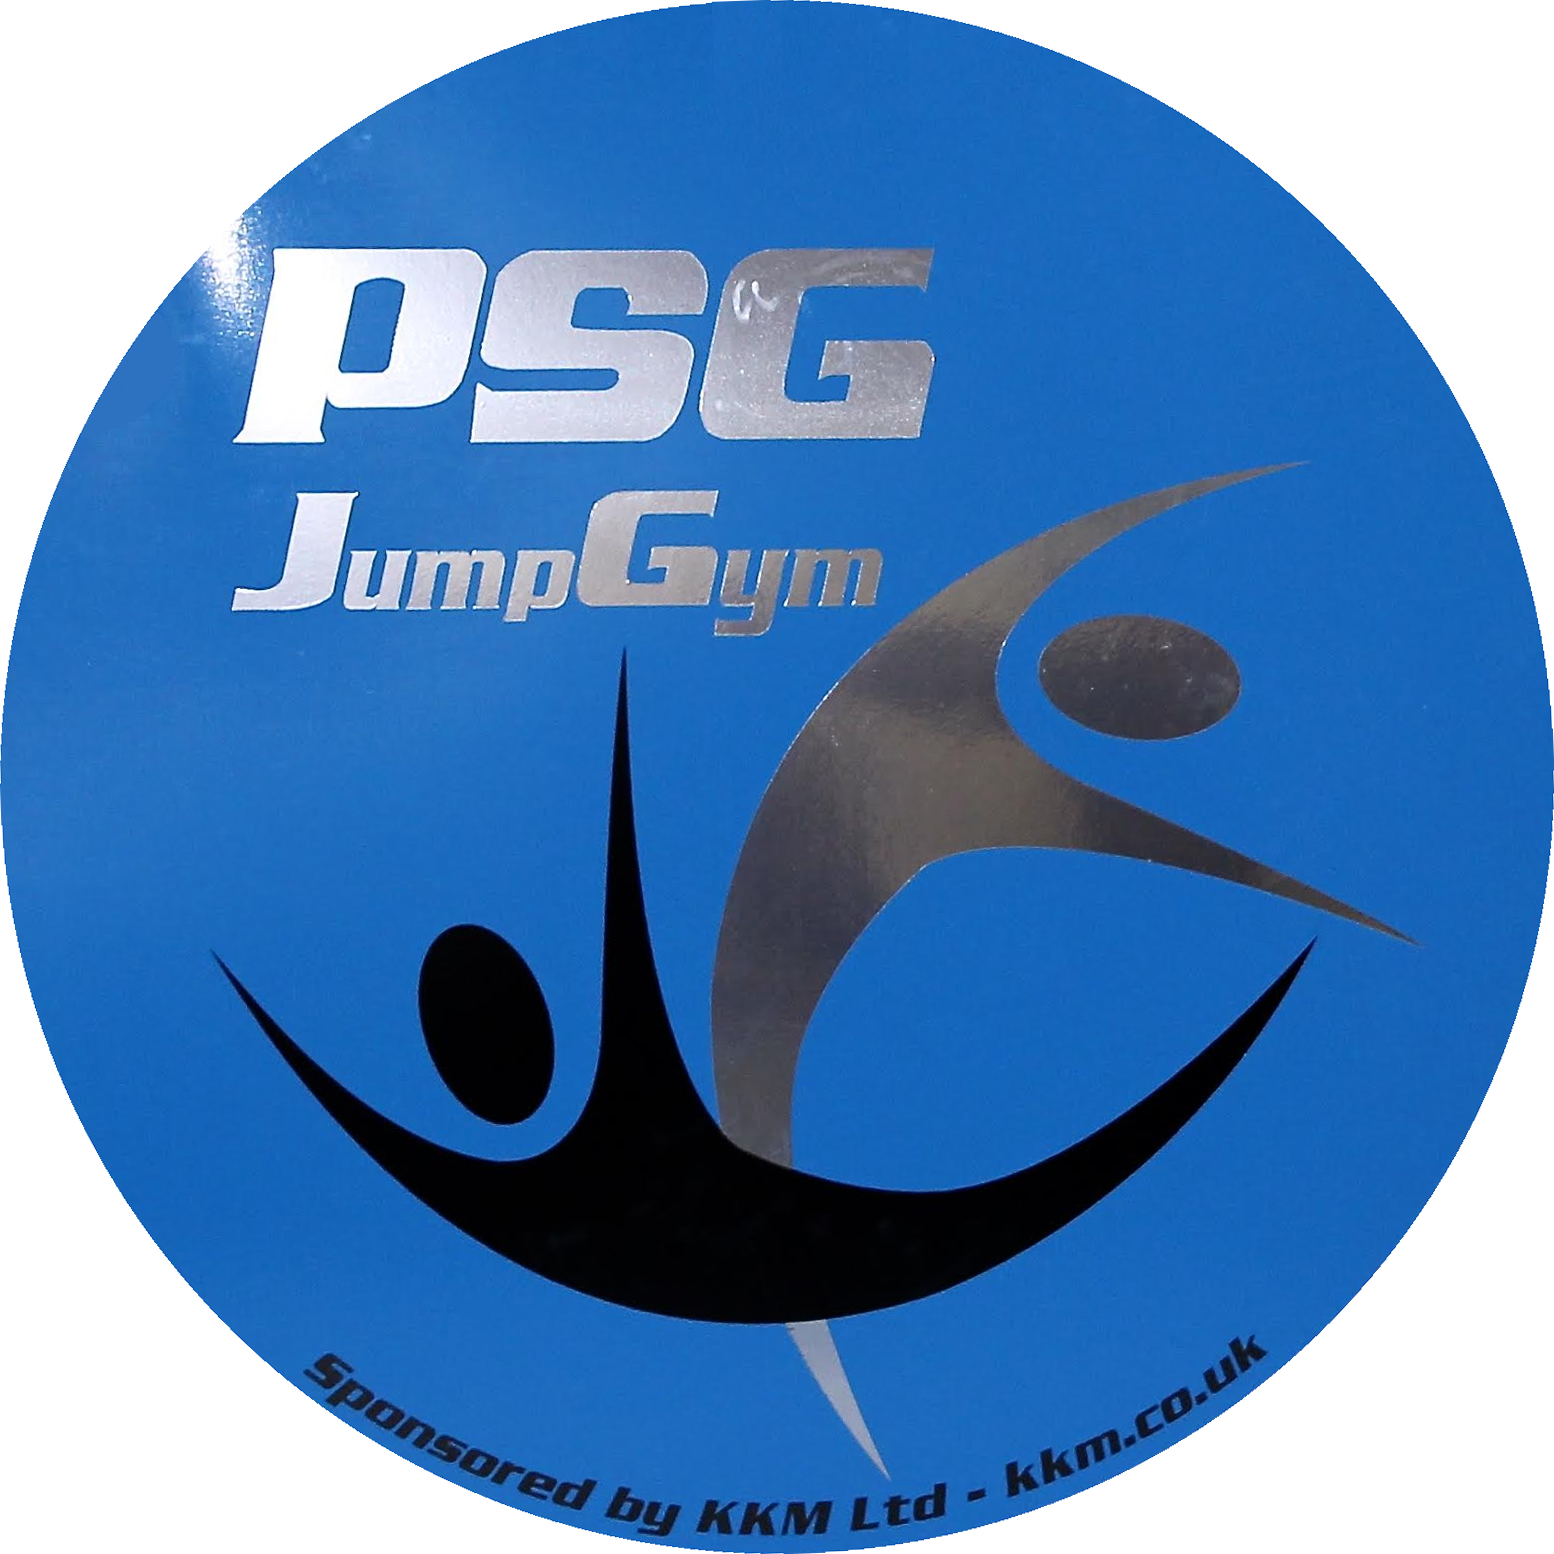 The Portsmouth School of Gymnastics